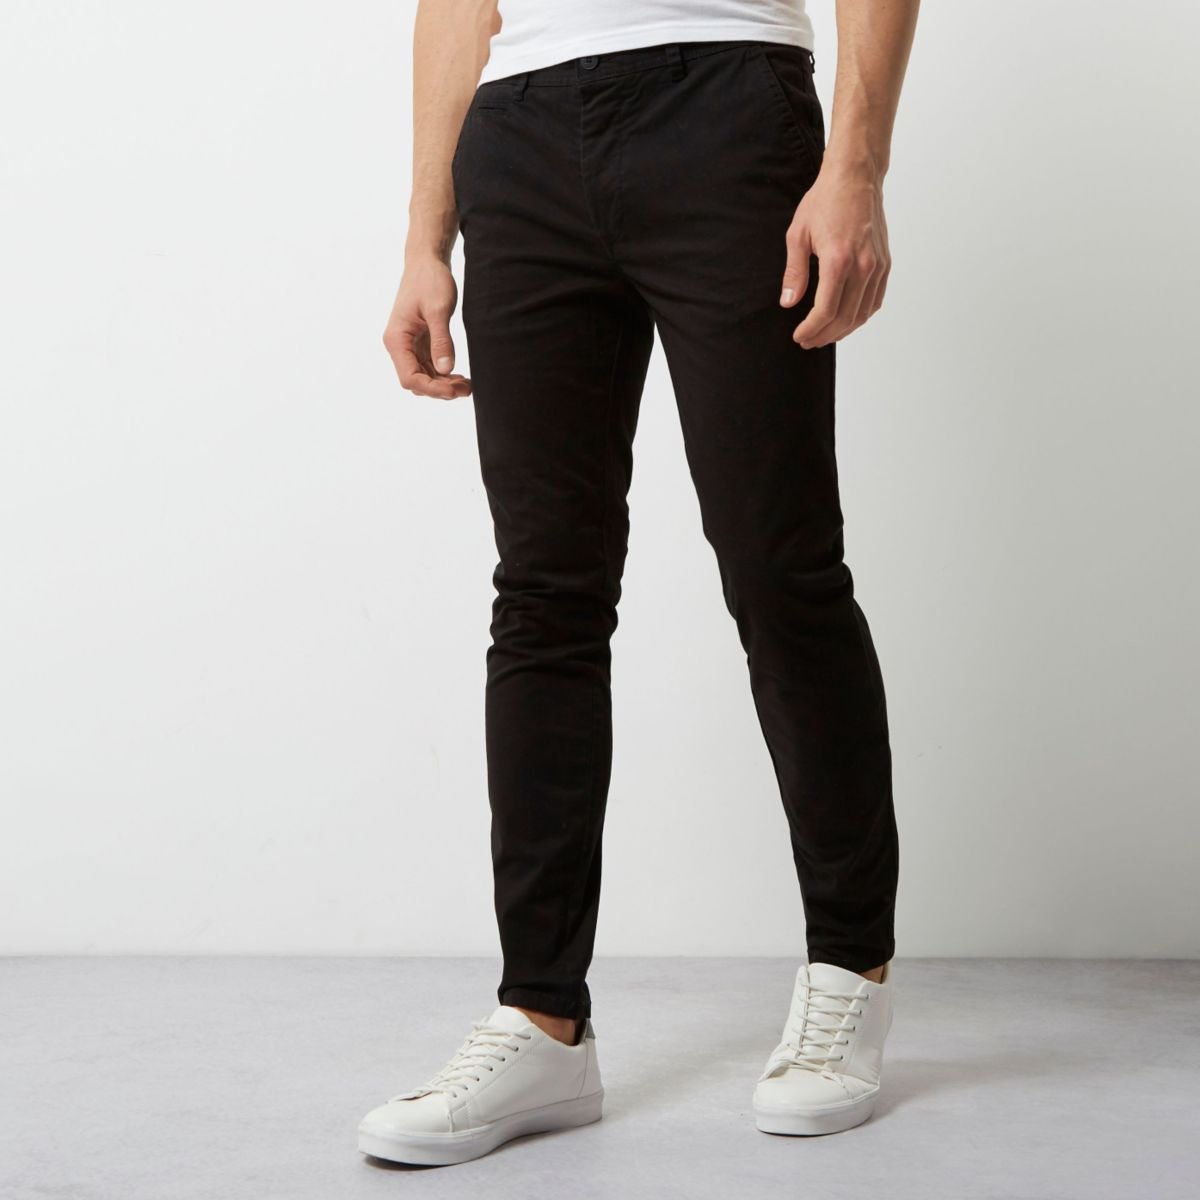 Elegant men's chinos for day to day use. From the office to formal occasions, pick out skinny or slim fittings in classic black, beige or trendy colors. This season discover comfortable carrot fits .